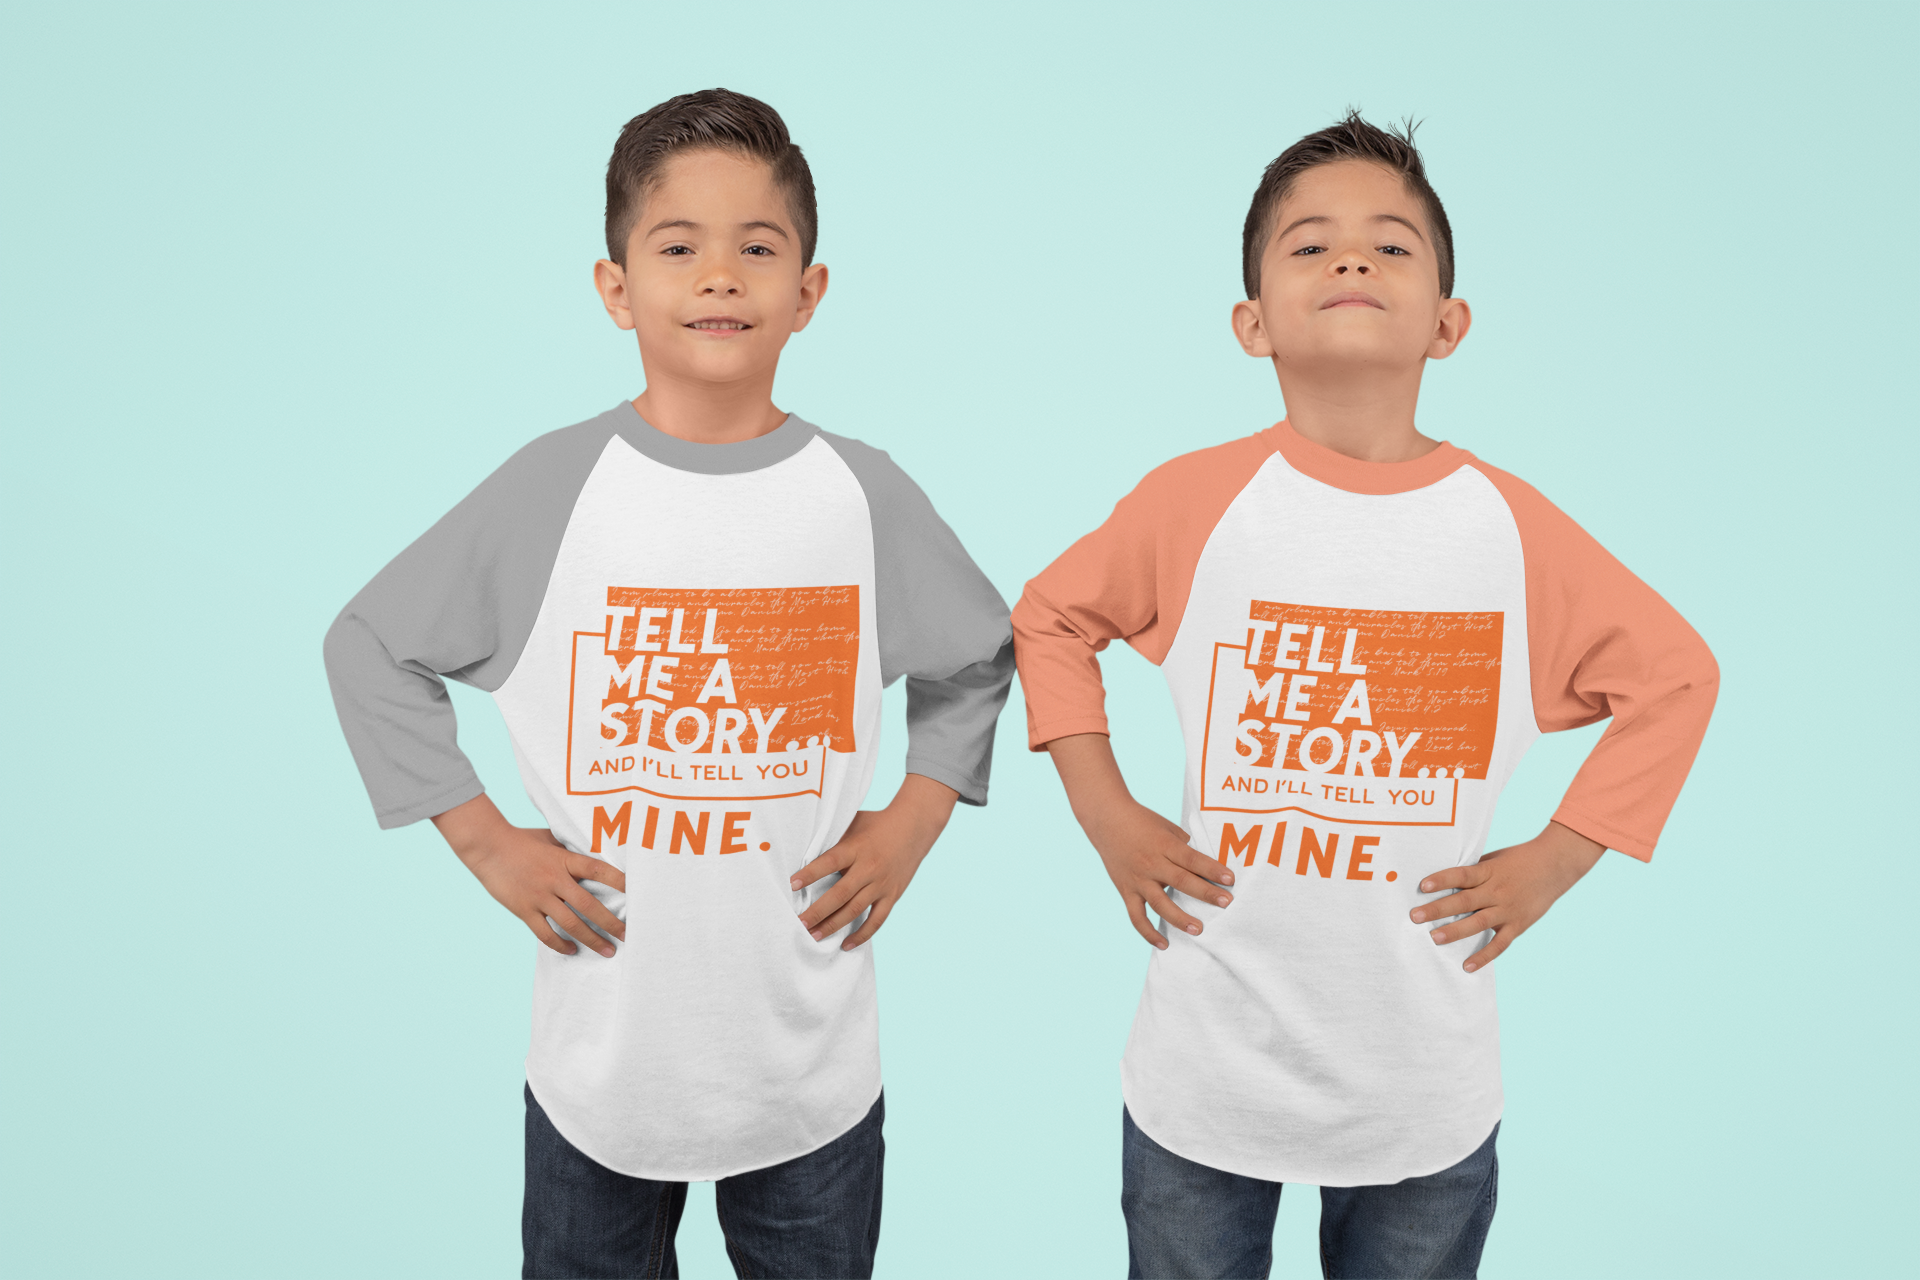 mockup-of-twin-boys-wearing-raglan-t-shi